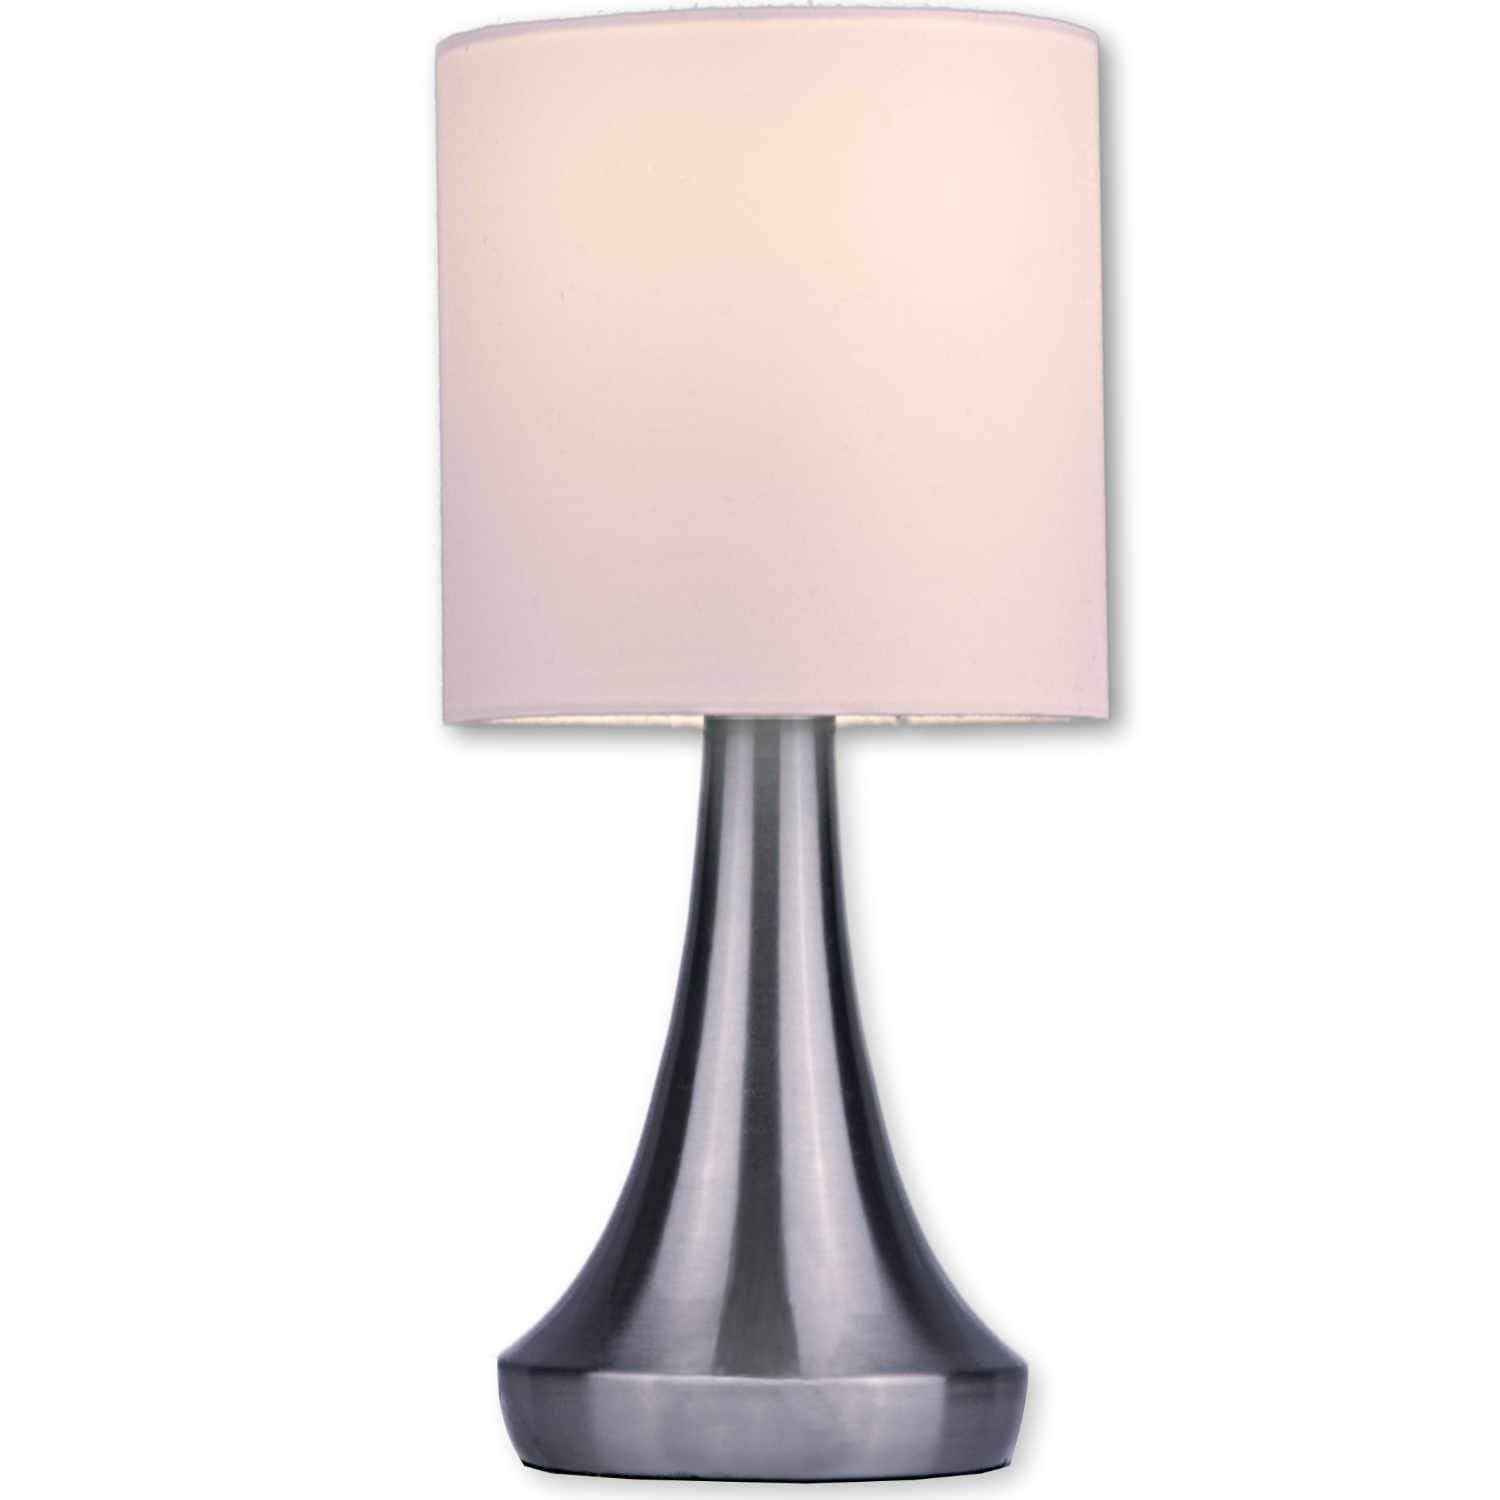 Fancy Standing Lamps Buy Modern Contemporary Floor Lamps Online At Overstock Our